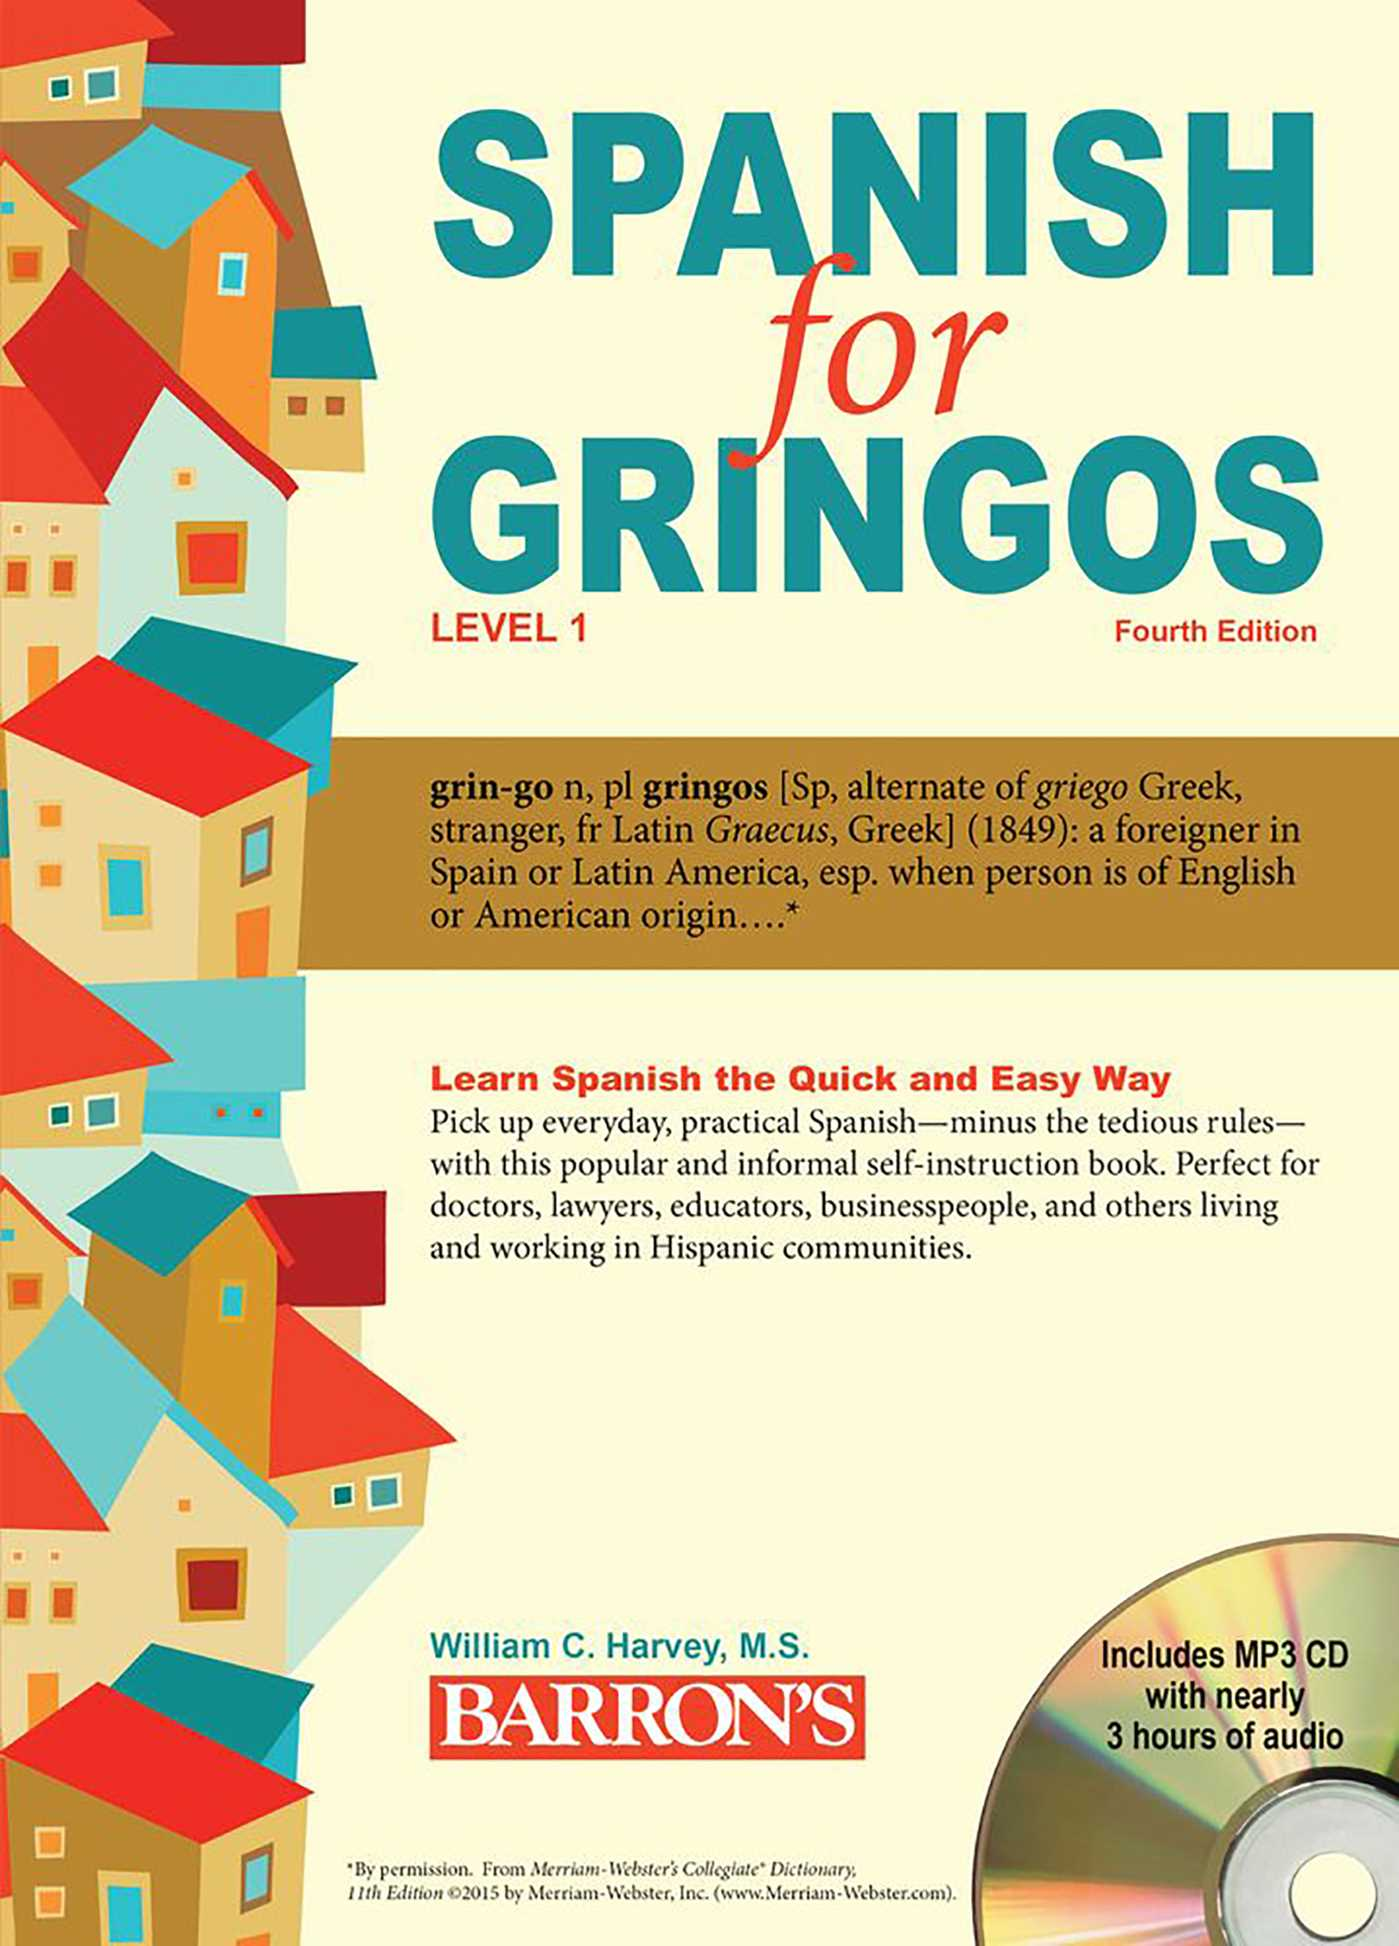 Spanish for Gringos, Level 1: with MP3 CD   Book by William C